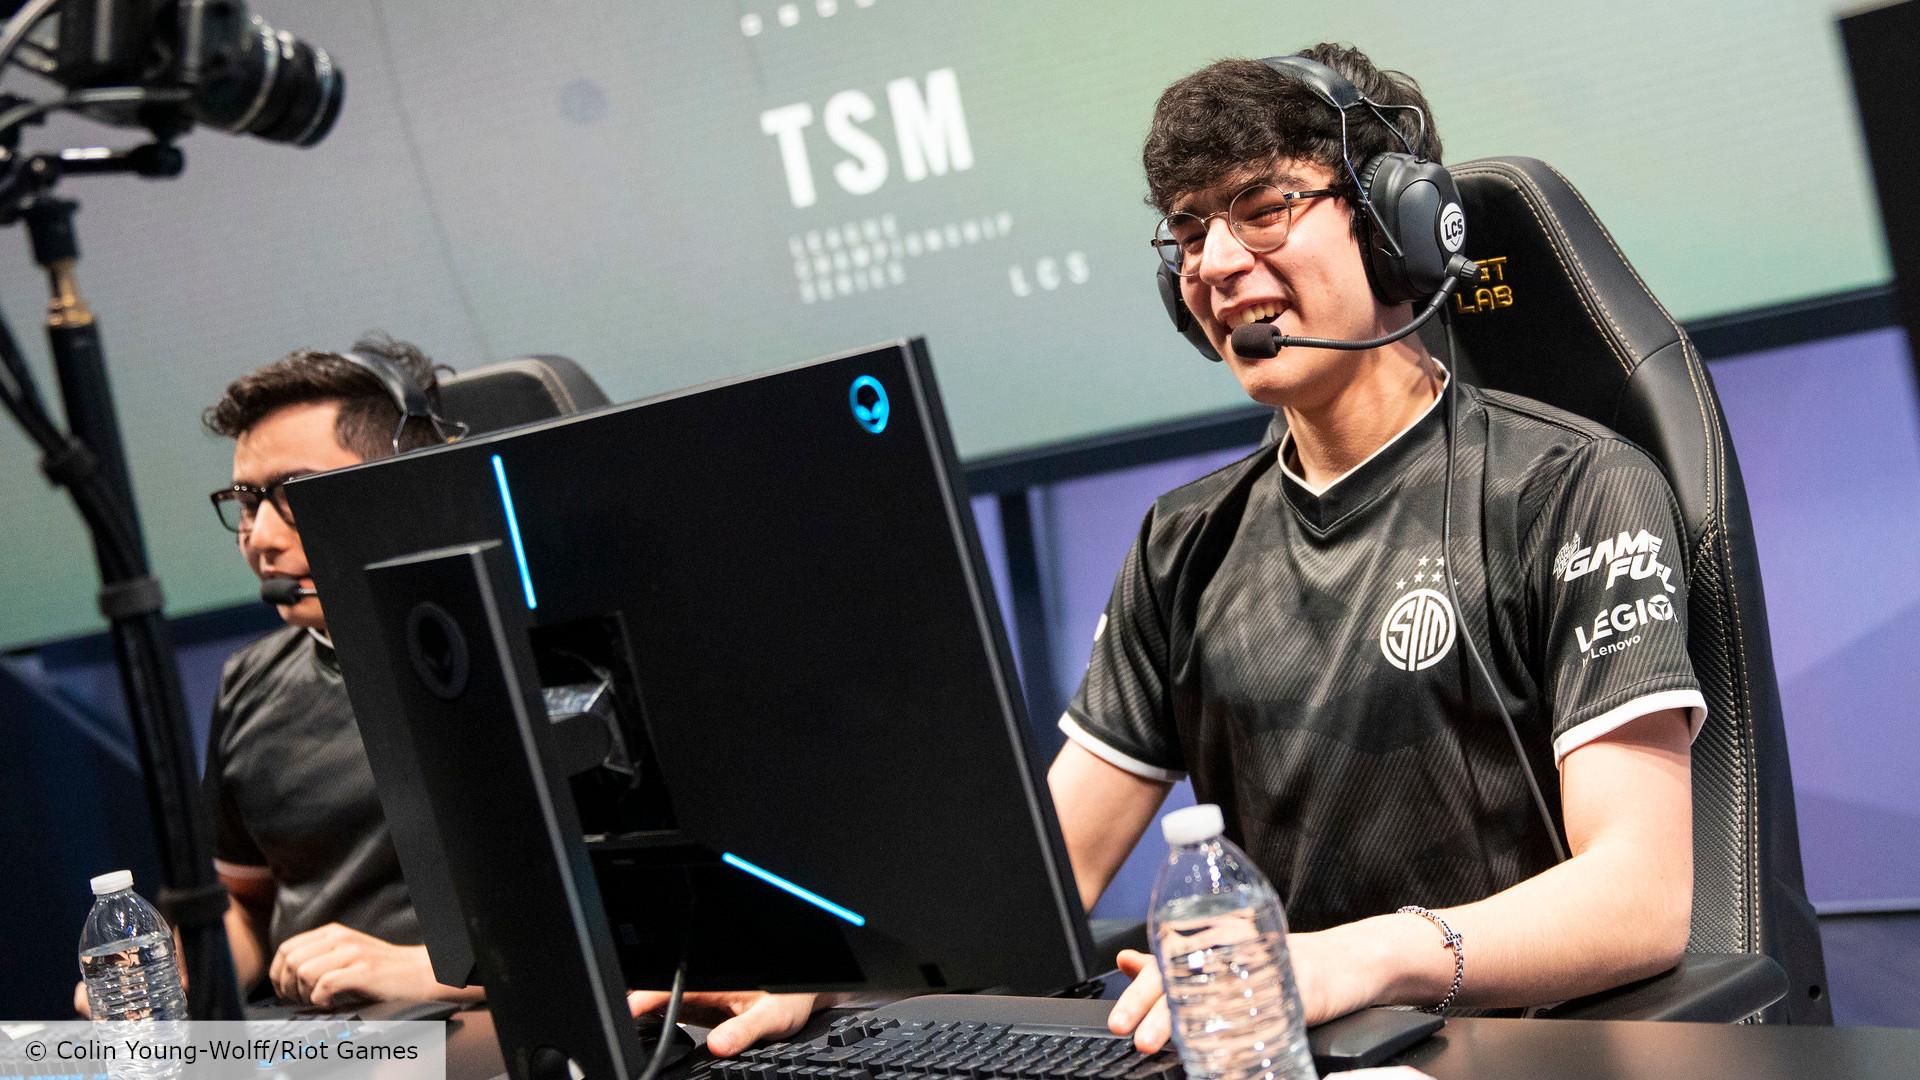 TSM president apologises for taking Dardoch trade call on Doublelift's stream